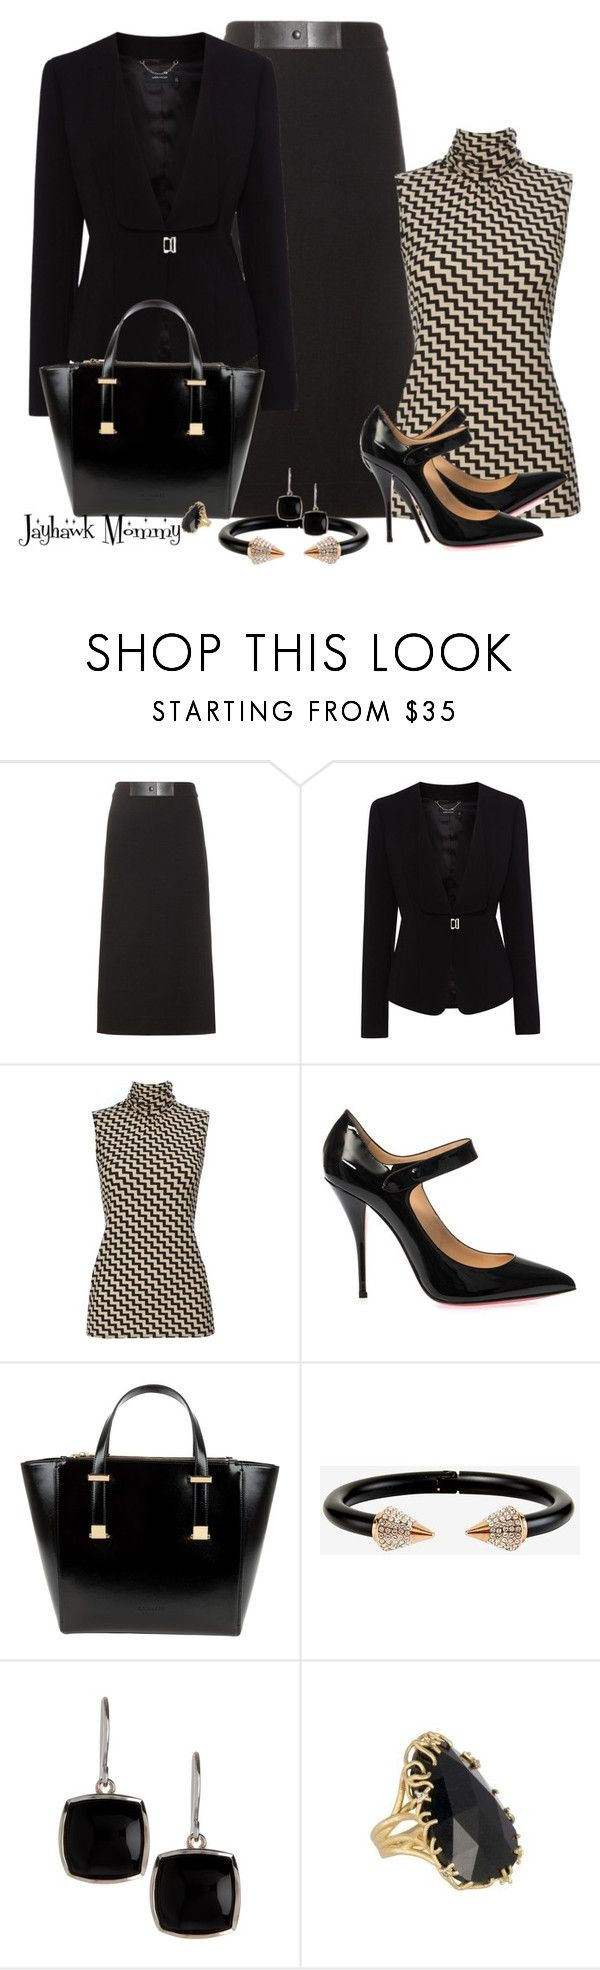 ted baker shoes polyvore create a set from an array in math